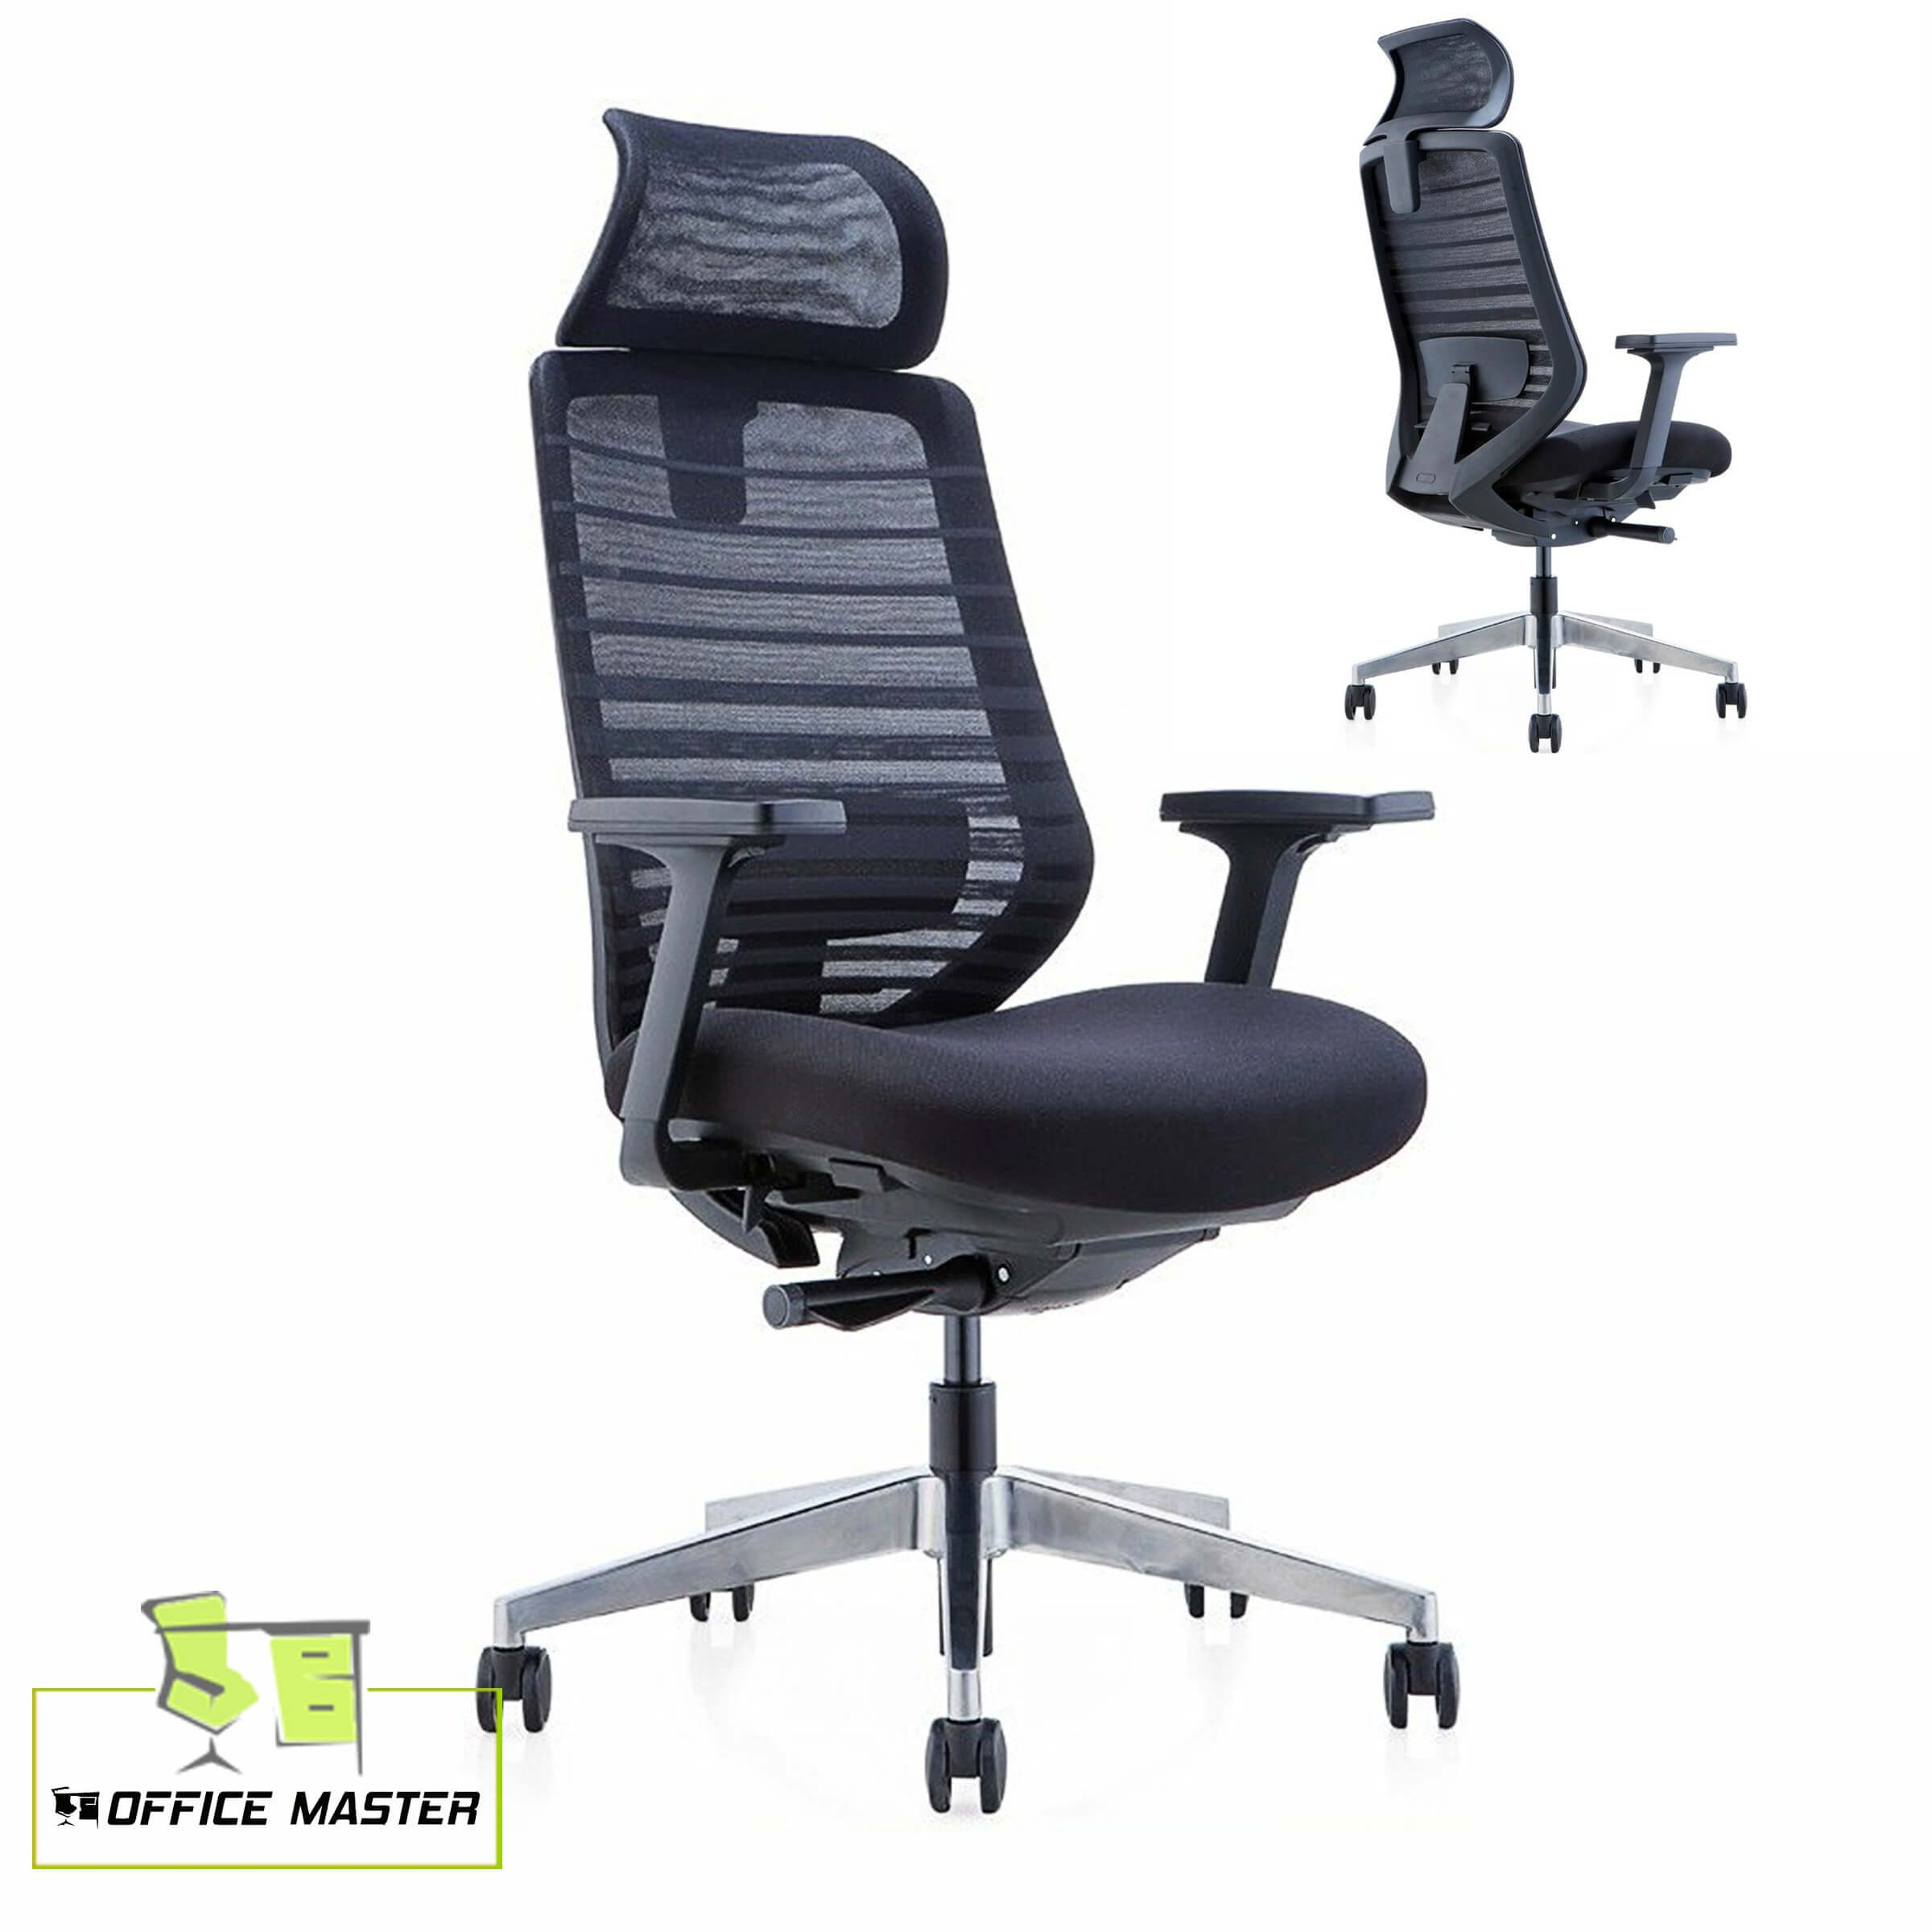 Sparta High Back Ergonomic Mesh Chair Mesh Chair Ergonomic